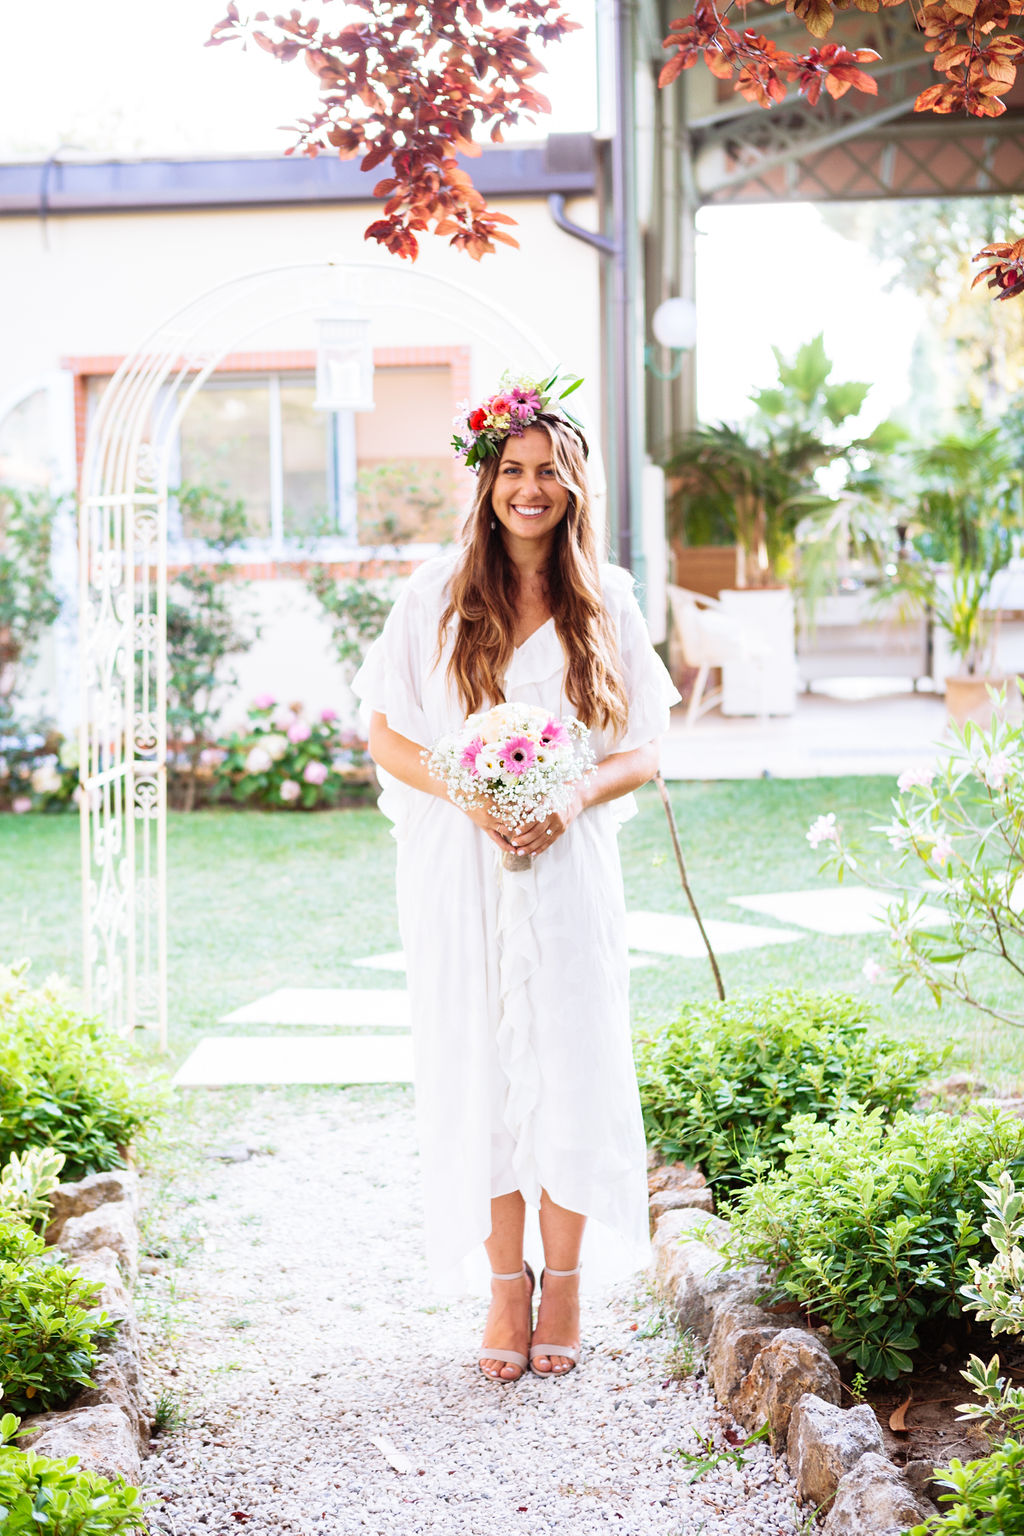 intimate wedding in Tuscany - Elizabeth Armitage Photography - bride with bouquet and floral crown